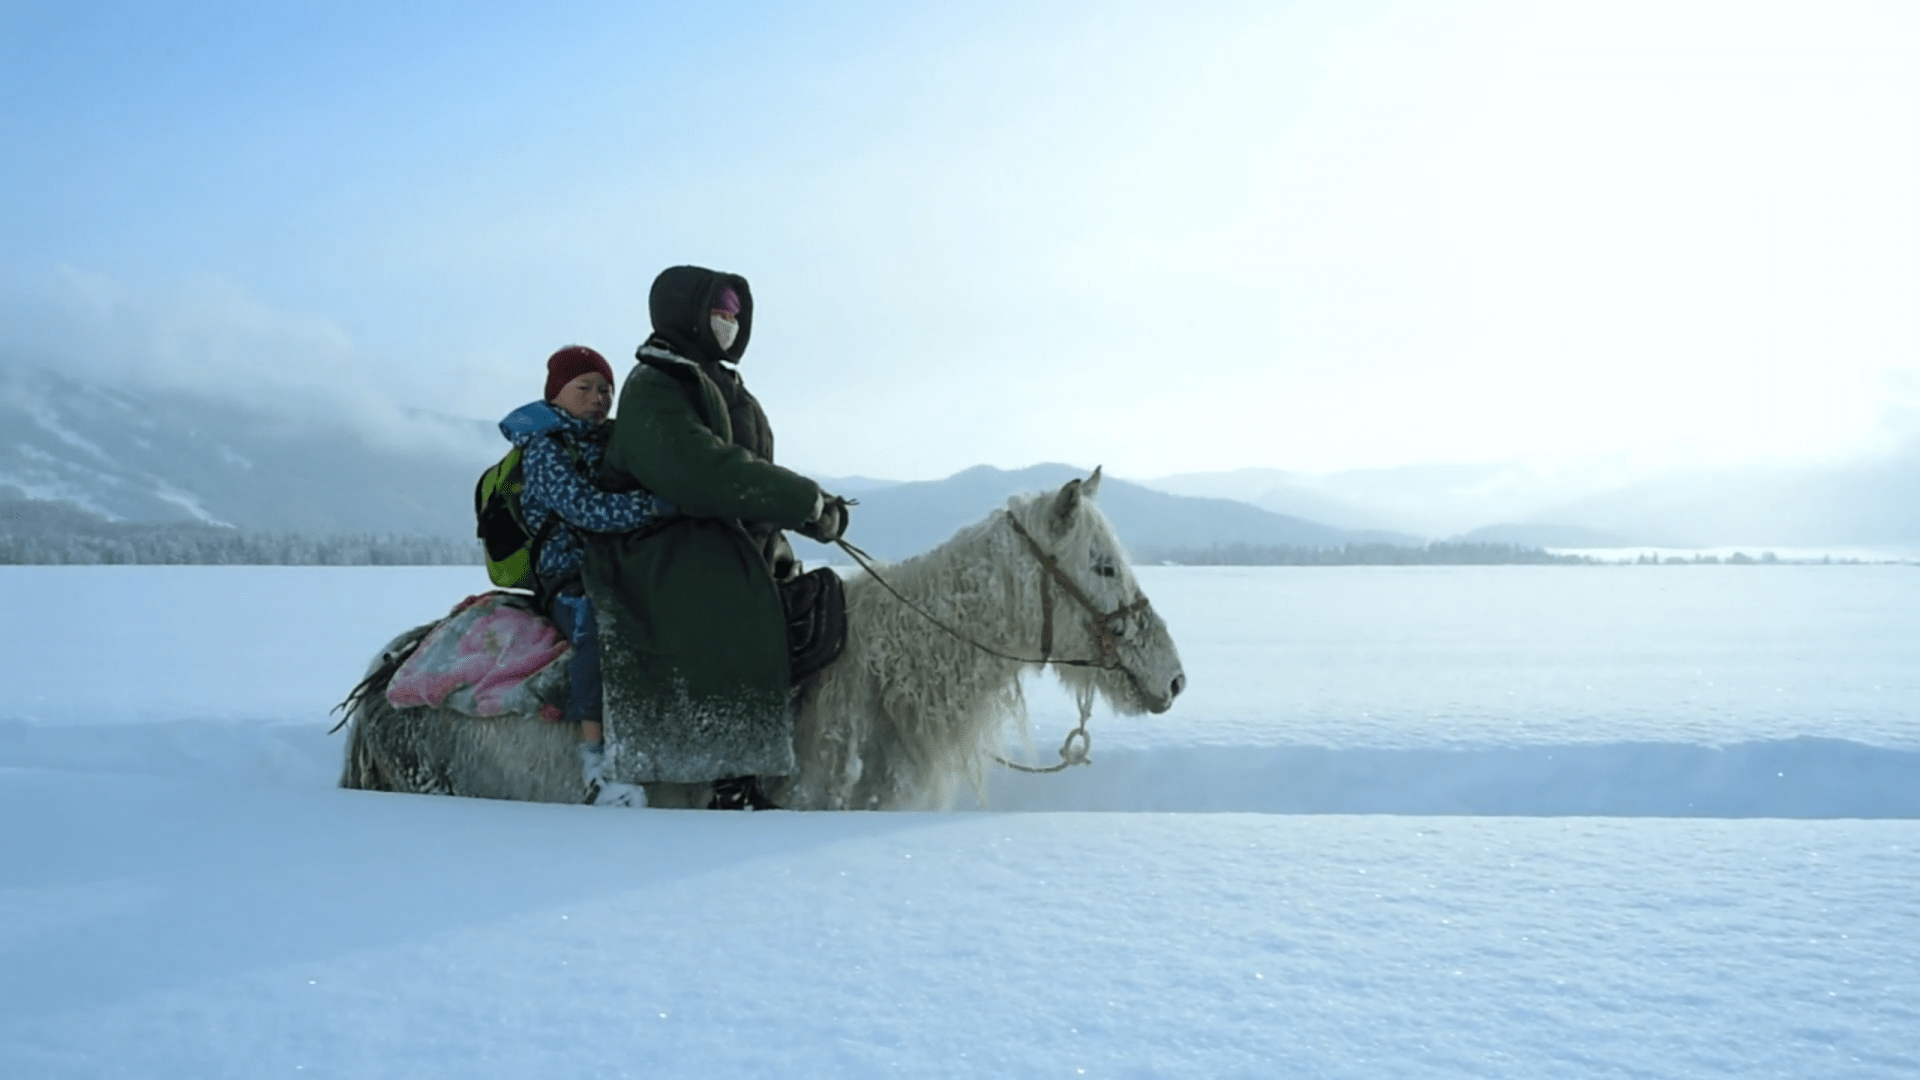 Tracing the Tracks of Skiing to the Mountains of Altai